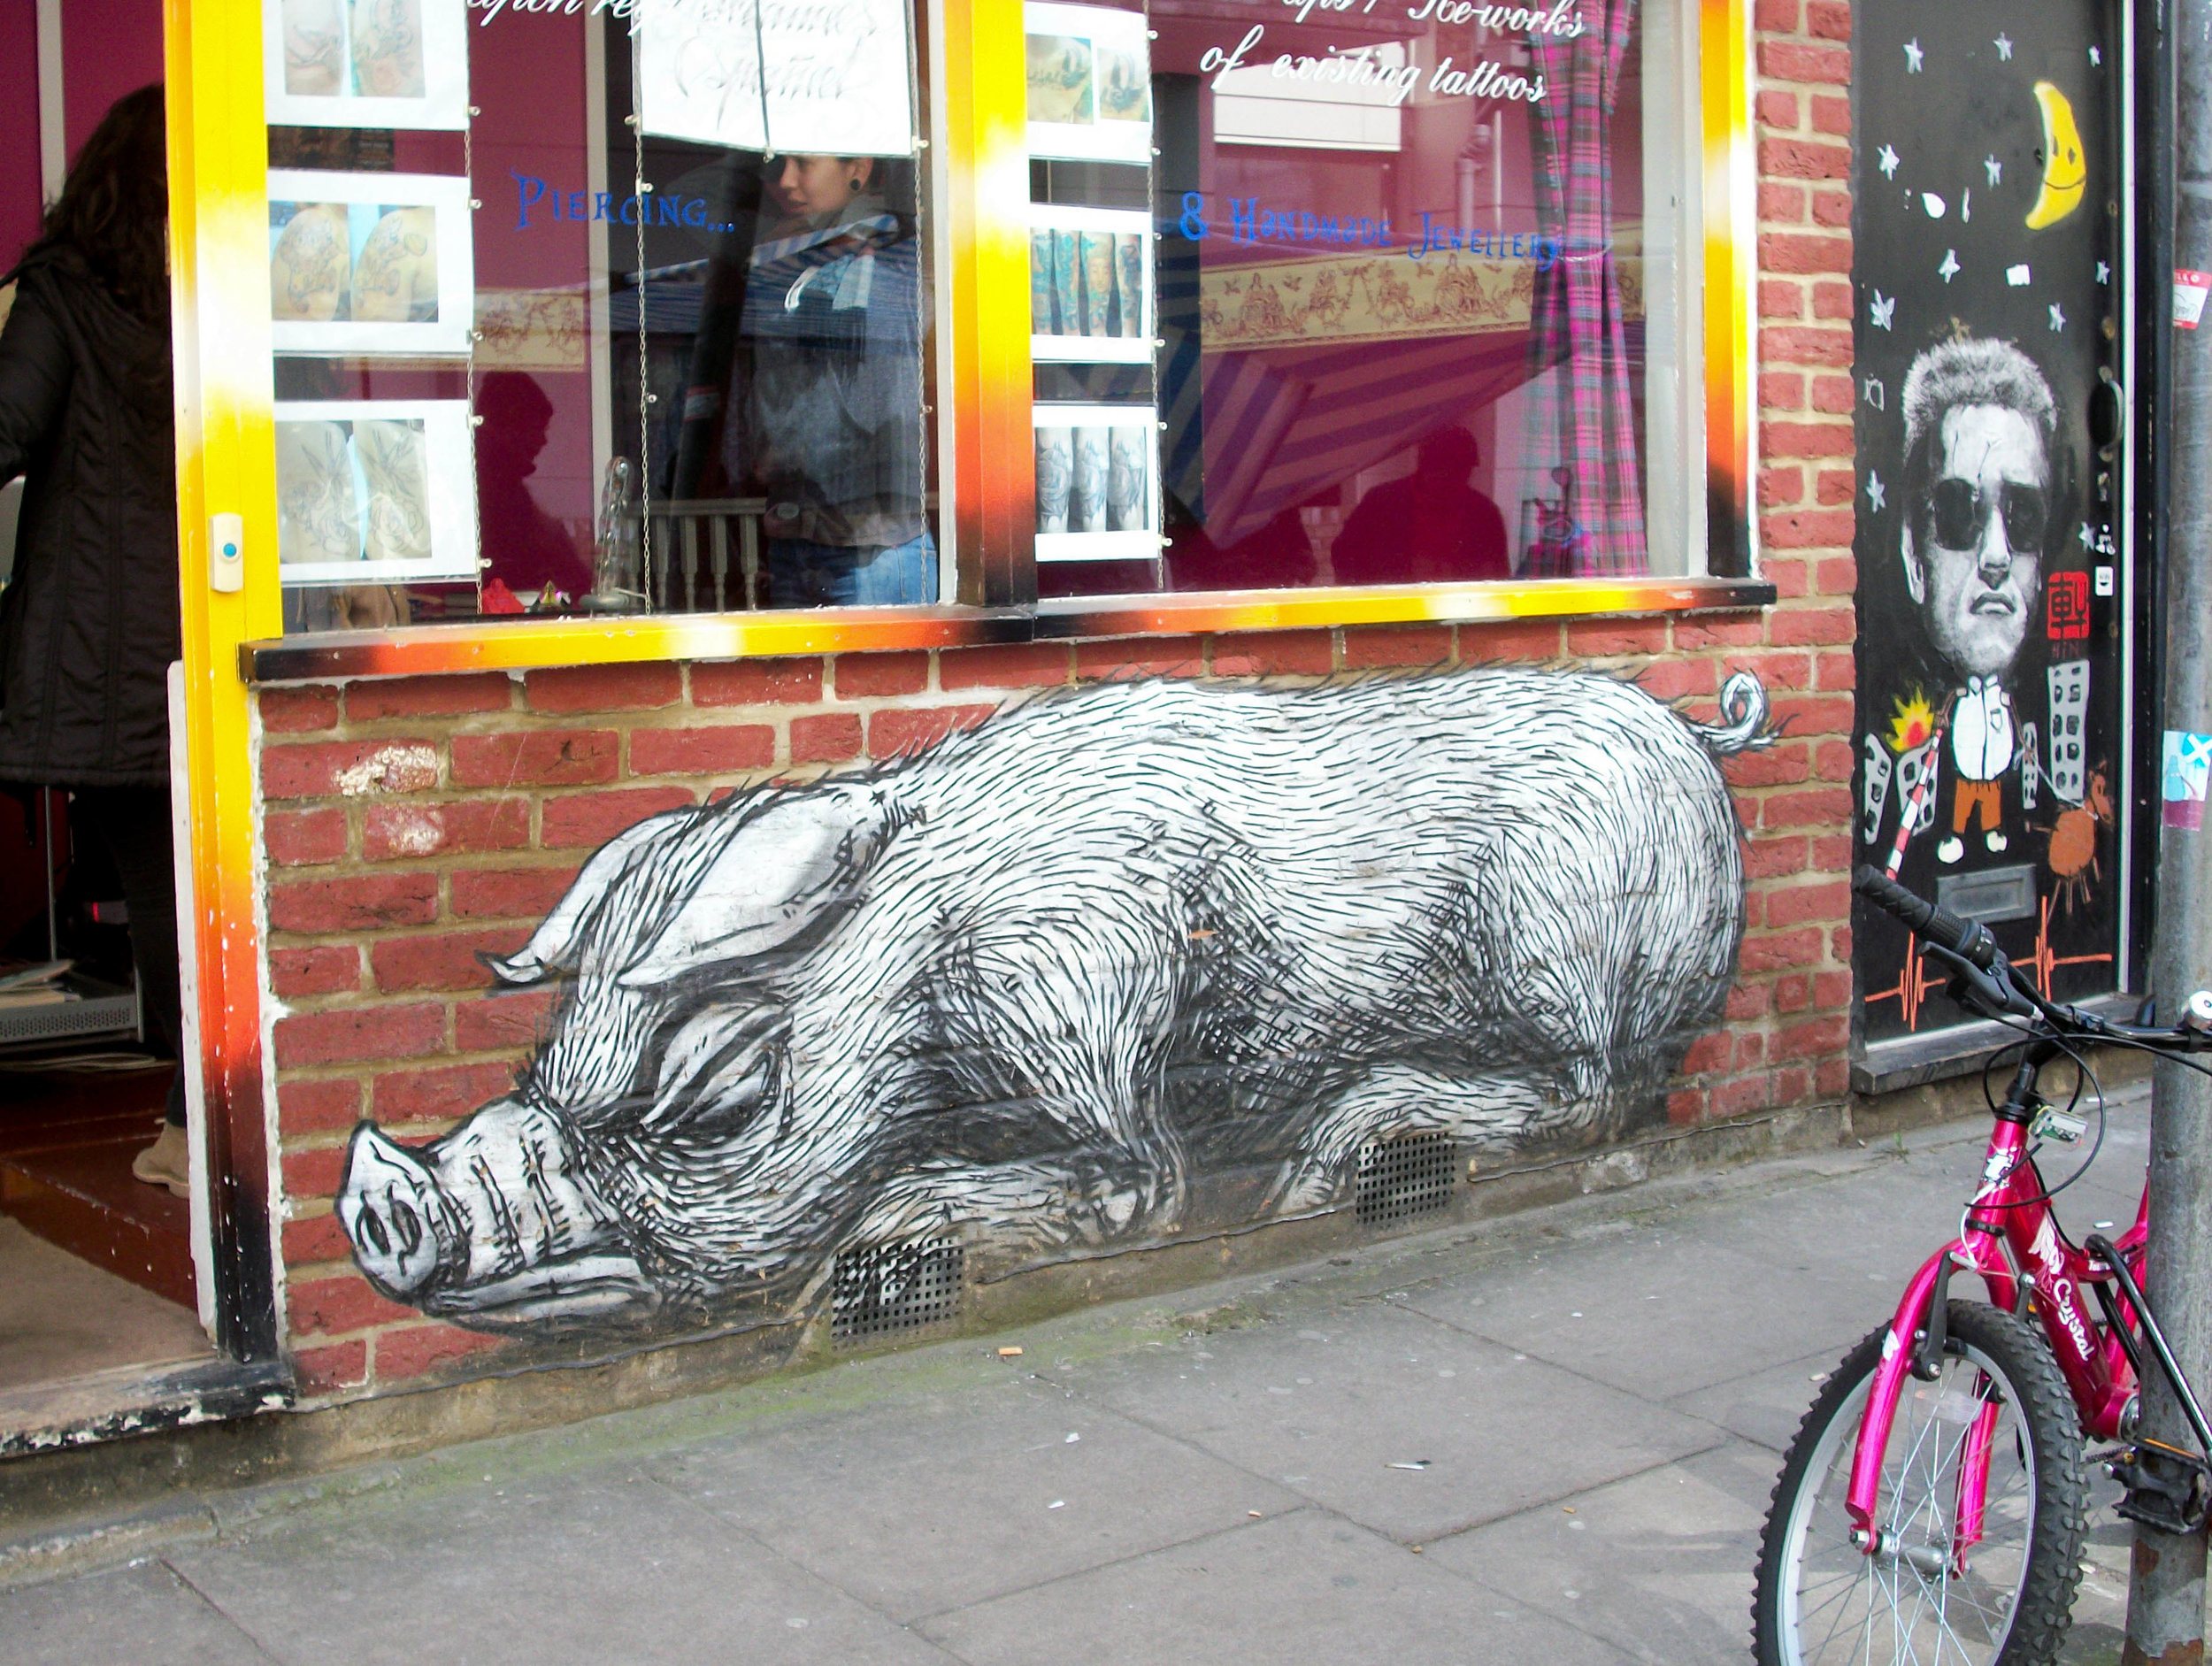 Piece by Roa in Bacon street, 2013  (own photo)